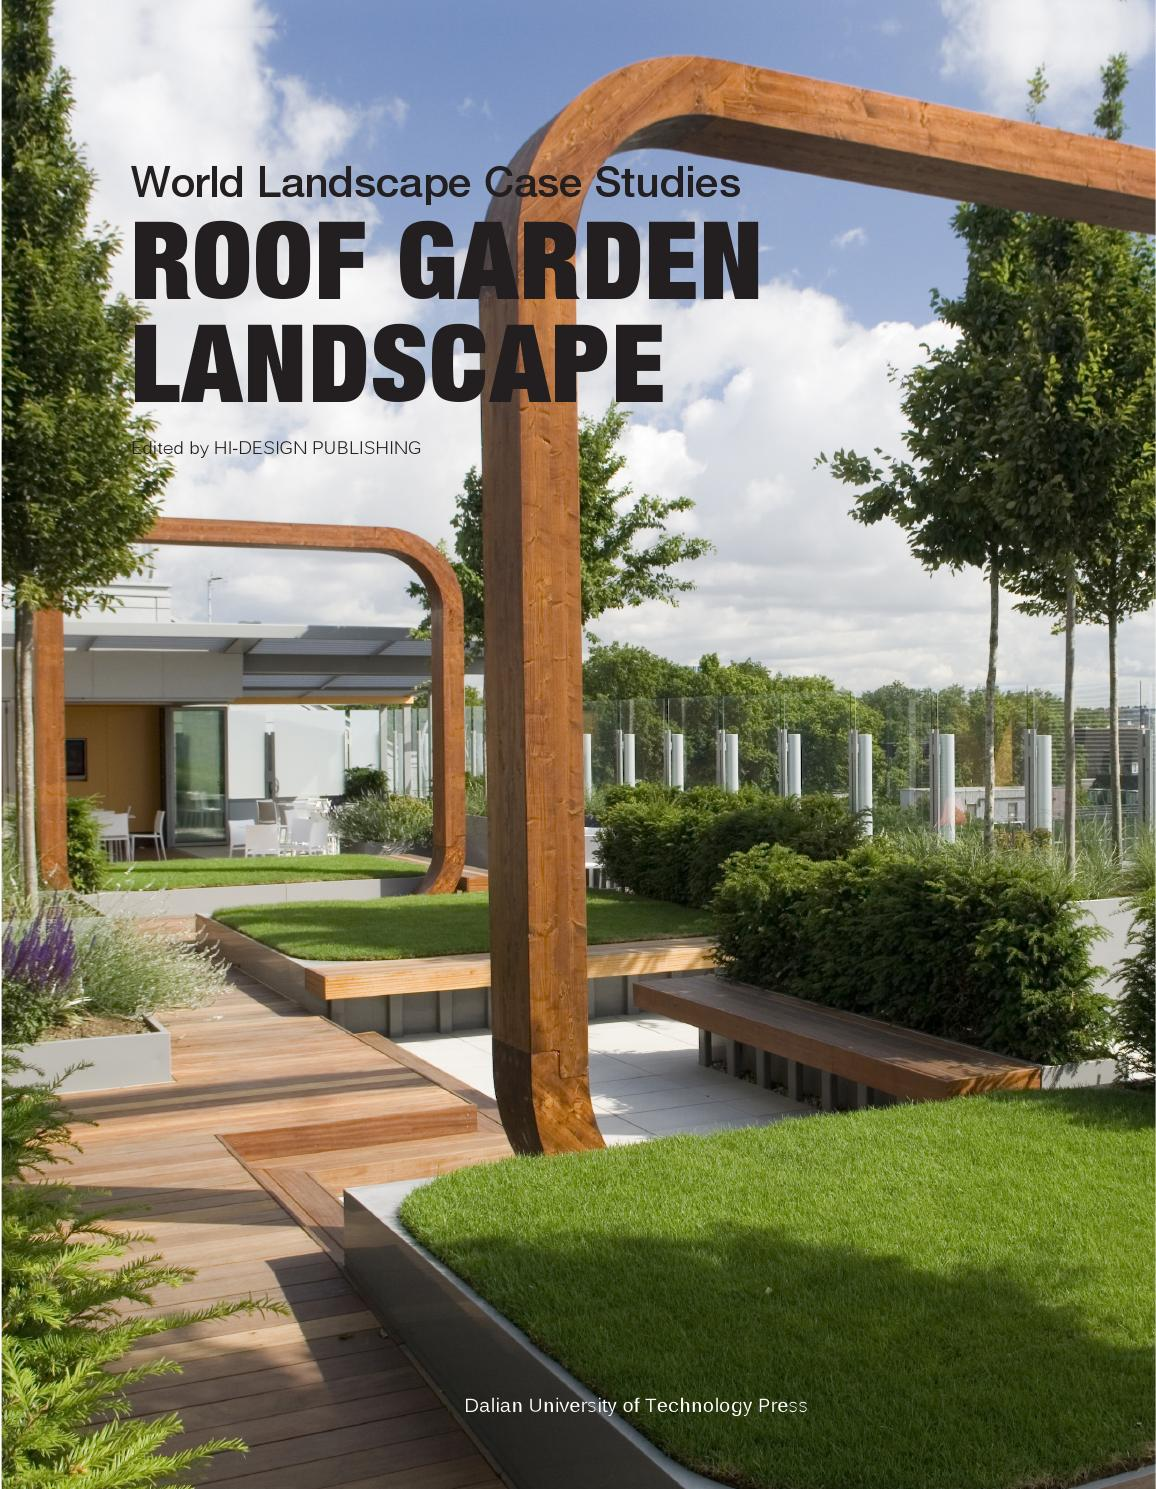 Issuu roof garden landscape world landscape case for Rooftop landscape design